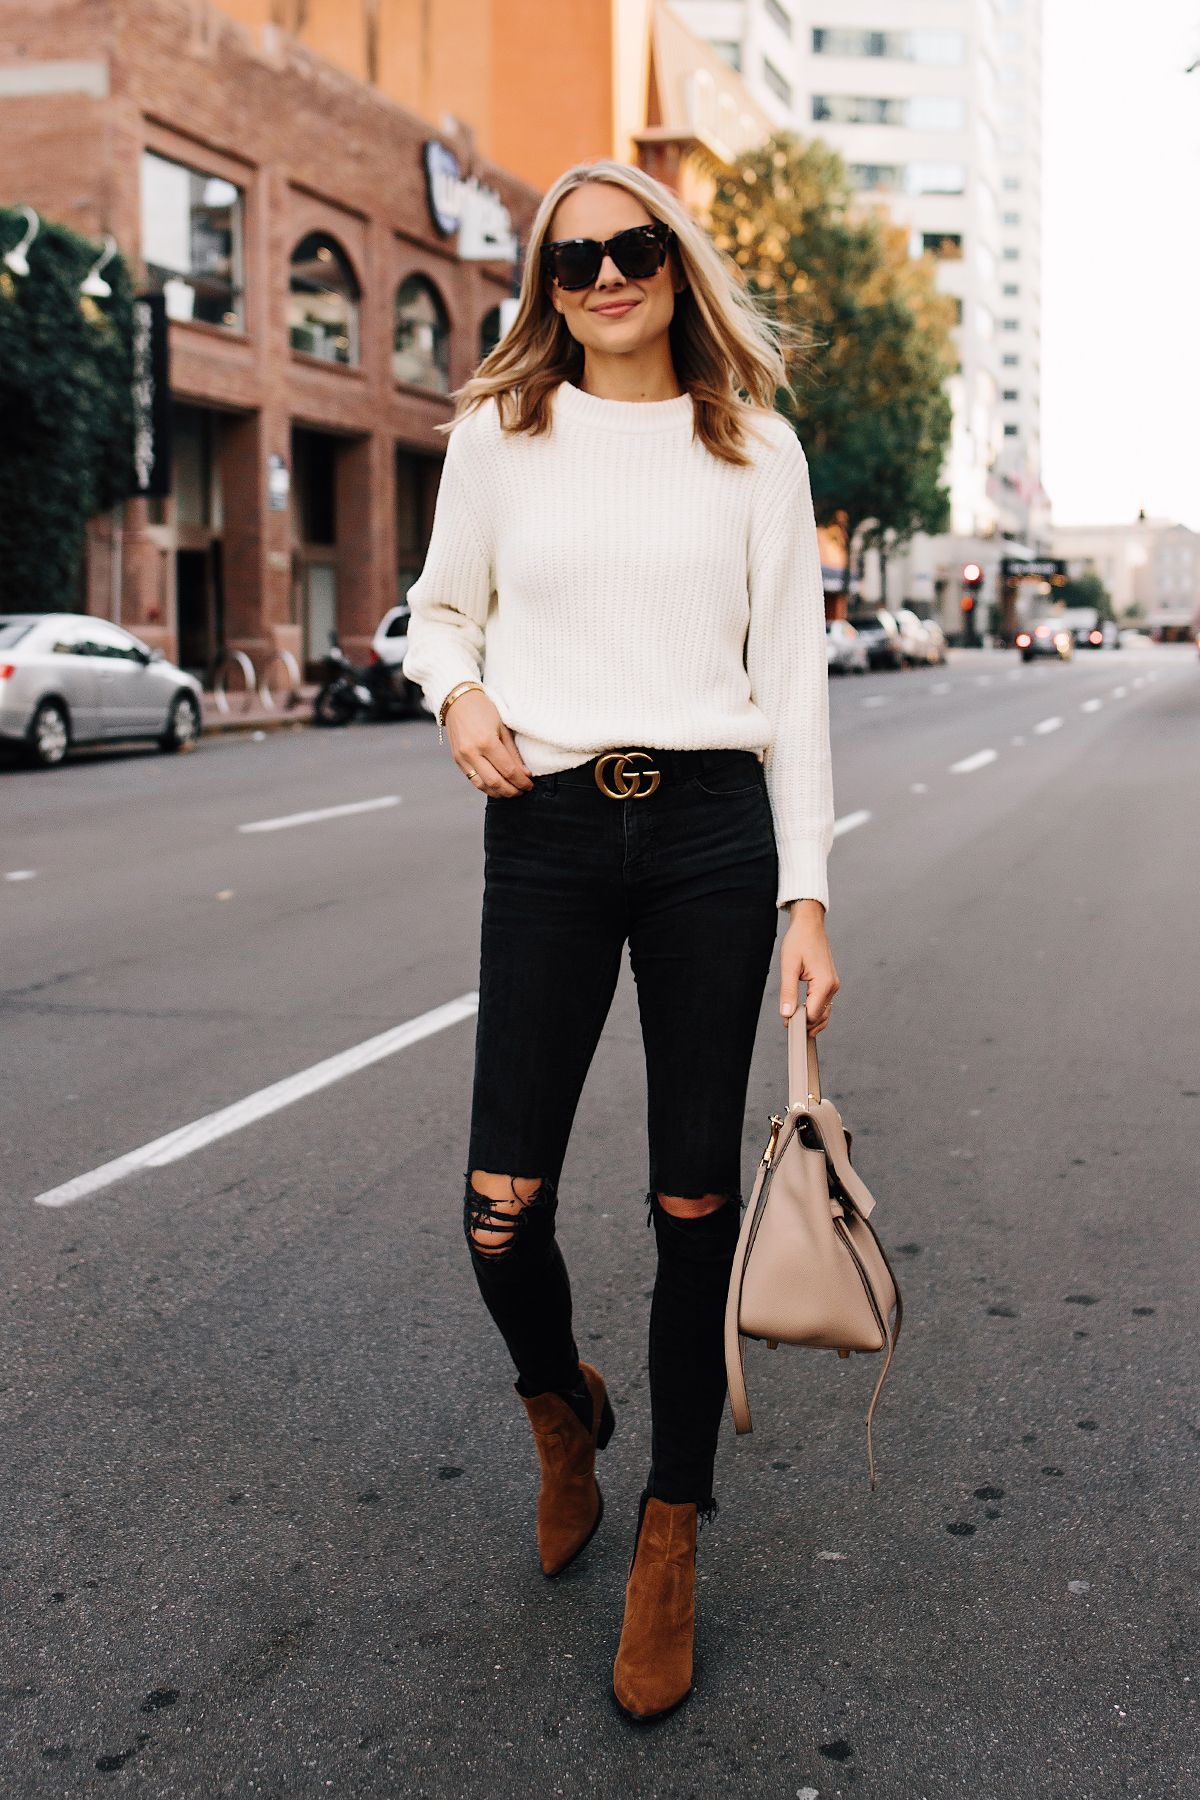 da7a941eeef Blonde Woman Wearing Ivory Knit Sweater Madewell Black Ripped Jeans Gucci  Logo Belt Steve Madden Brown Chelsea Booties Outfit Celine Mini Belt Bag  Fashion ...